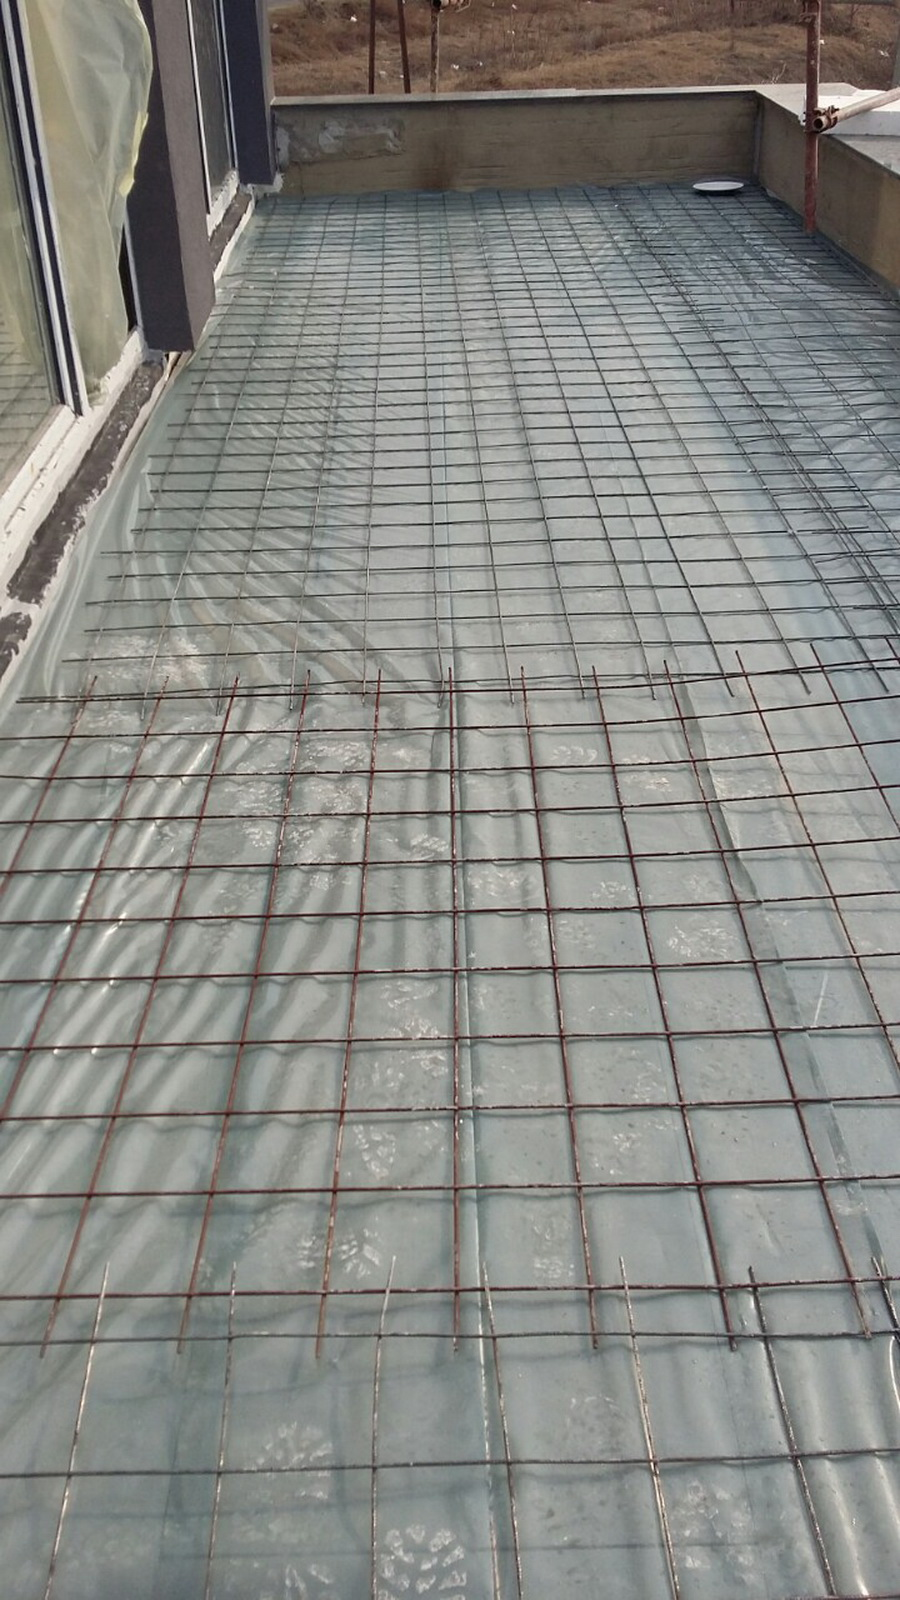 Waterproofing works and thermal insulation on a roof terrace